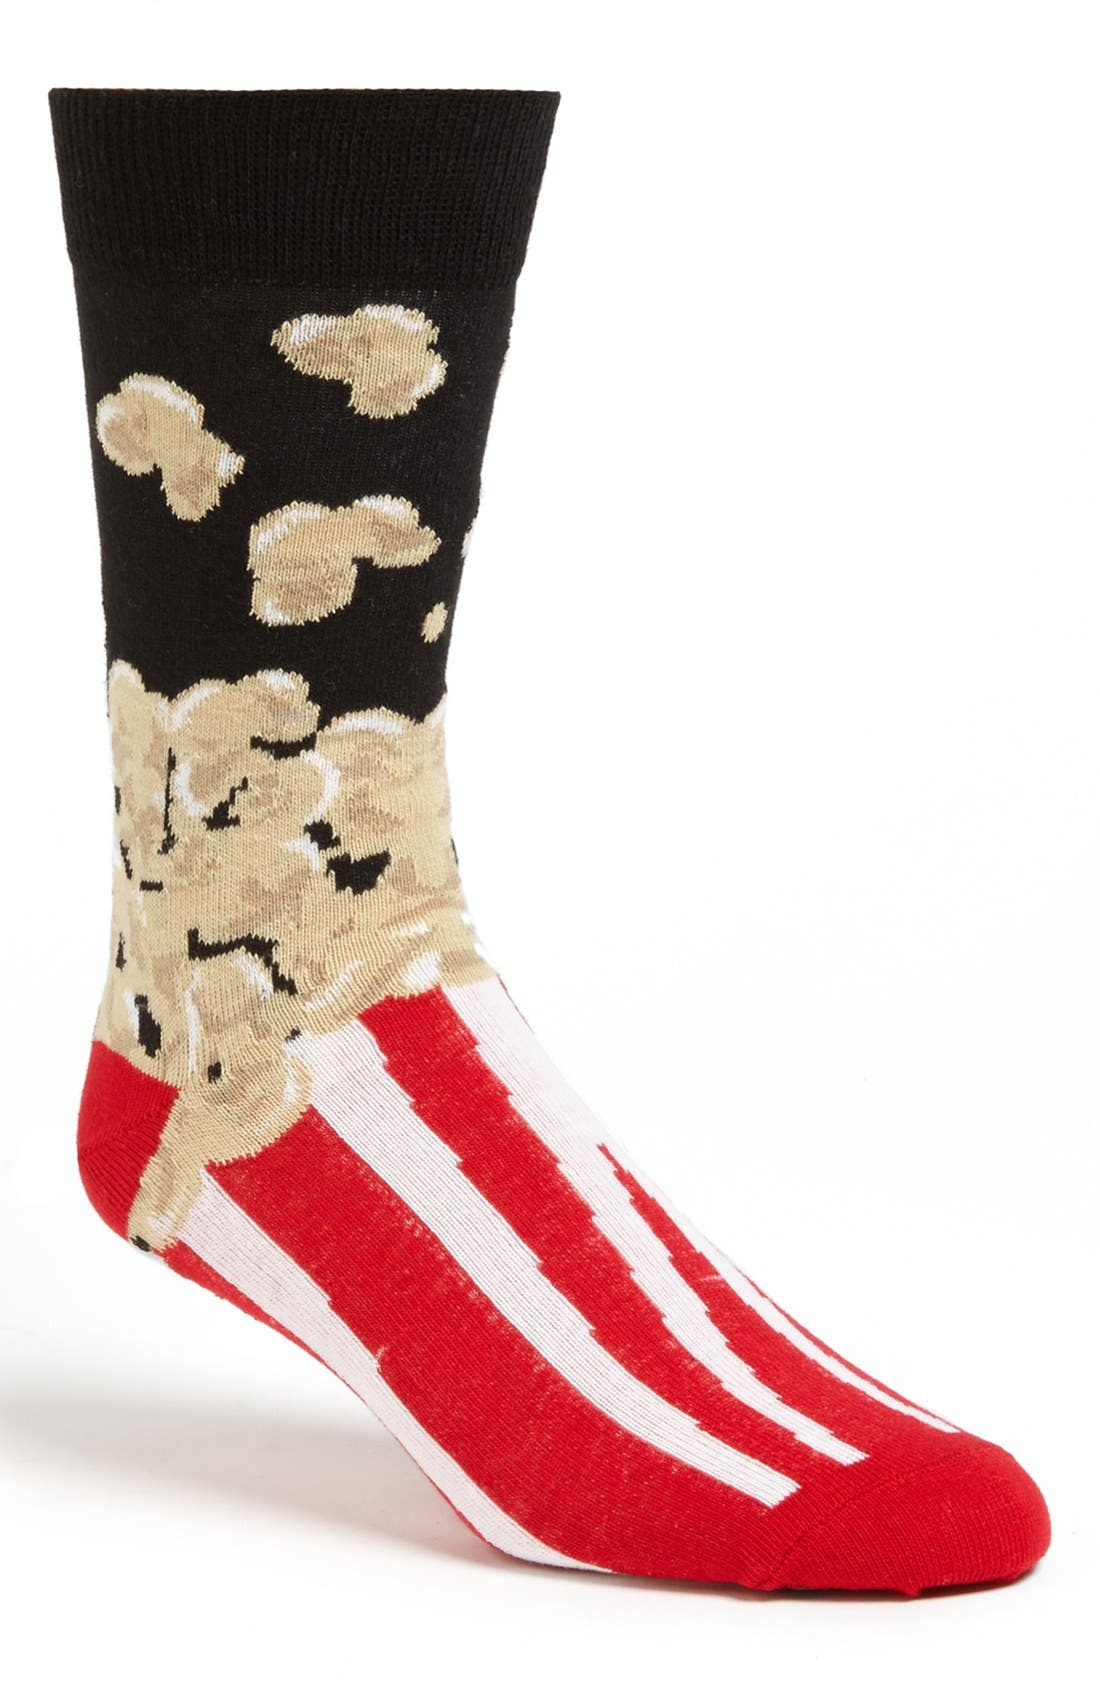 Alternate Image 1 Selected - Topman Popcorn Box Socks